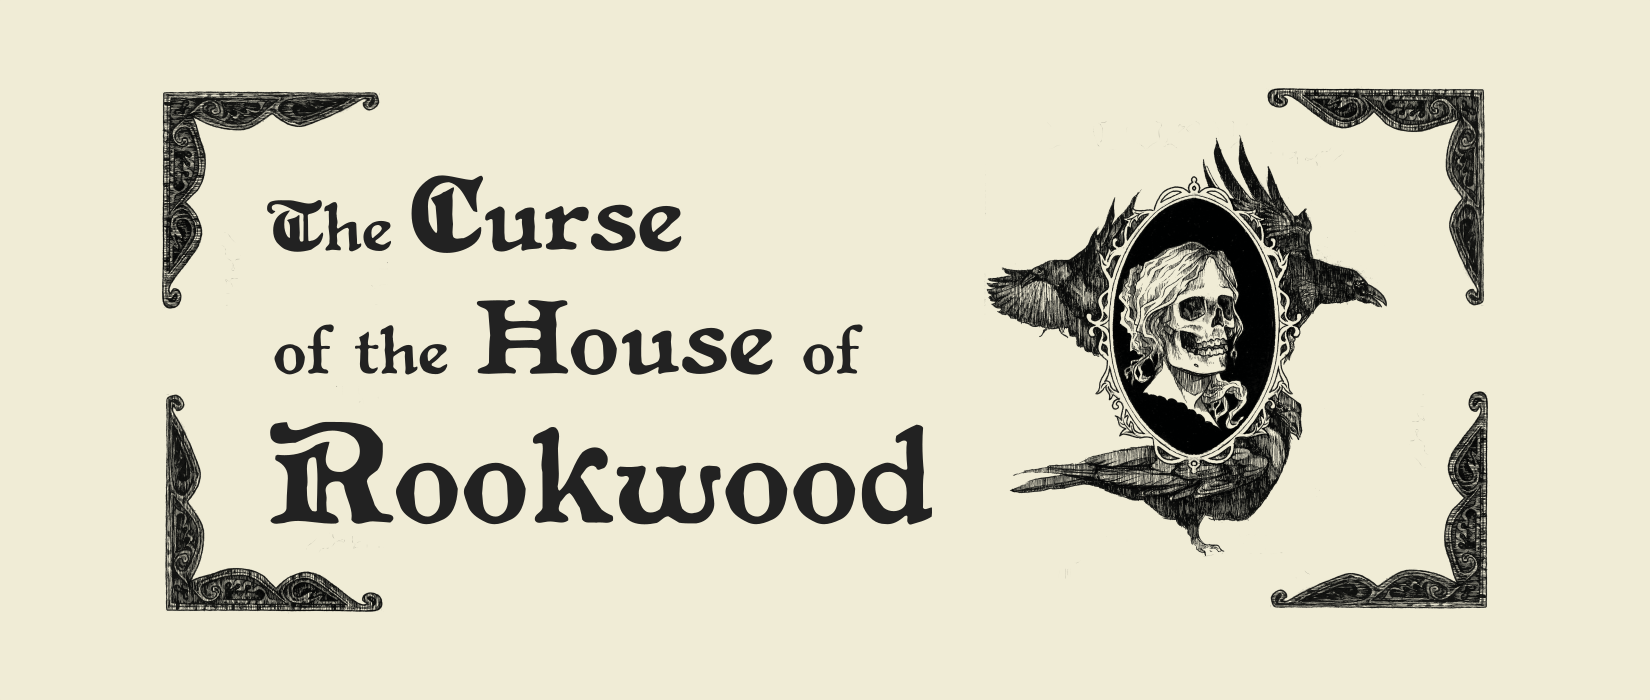 The Curse of the House of Rockwood